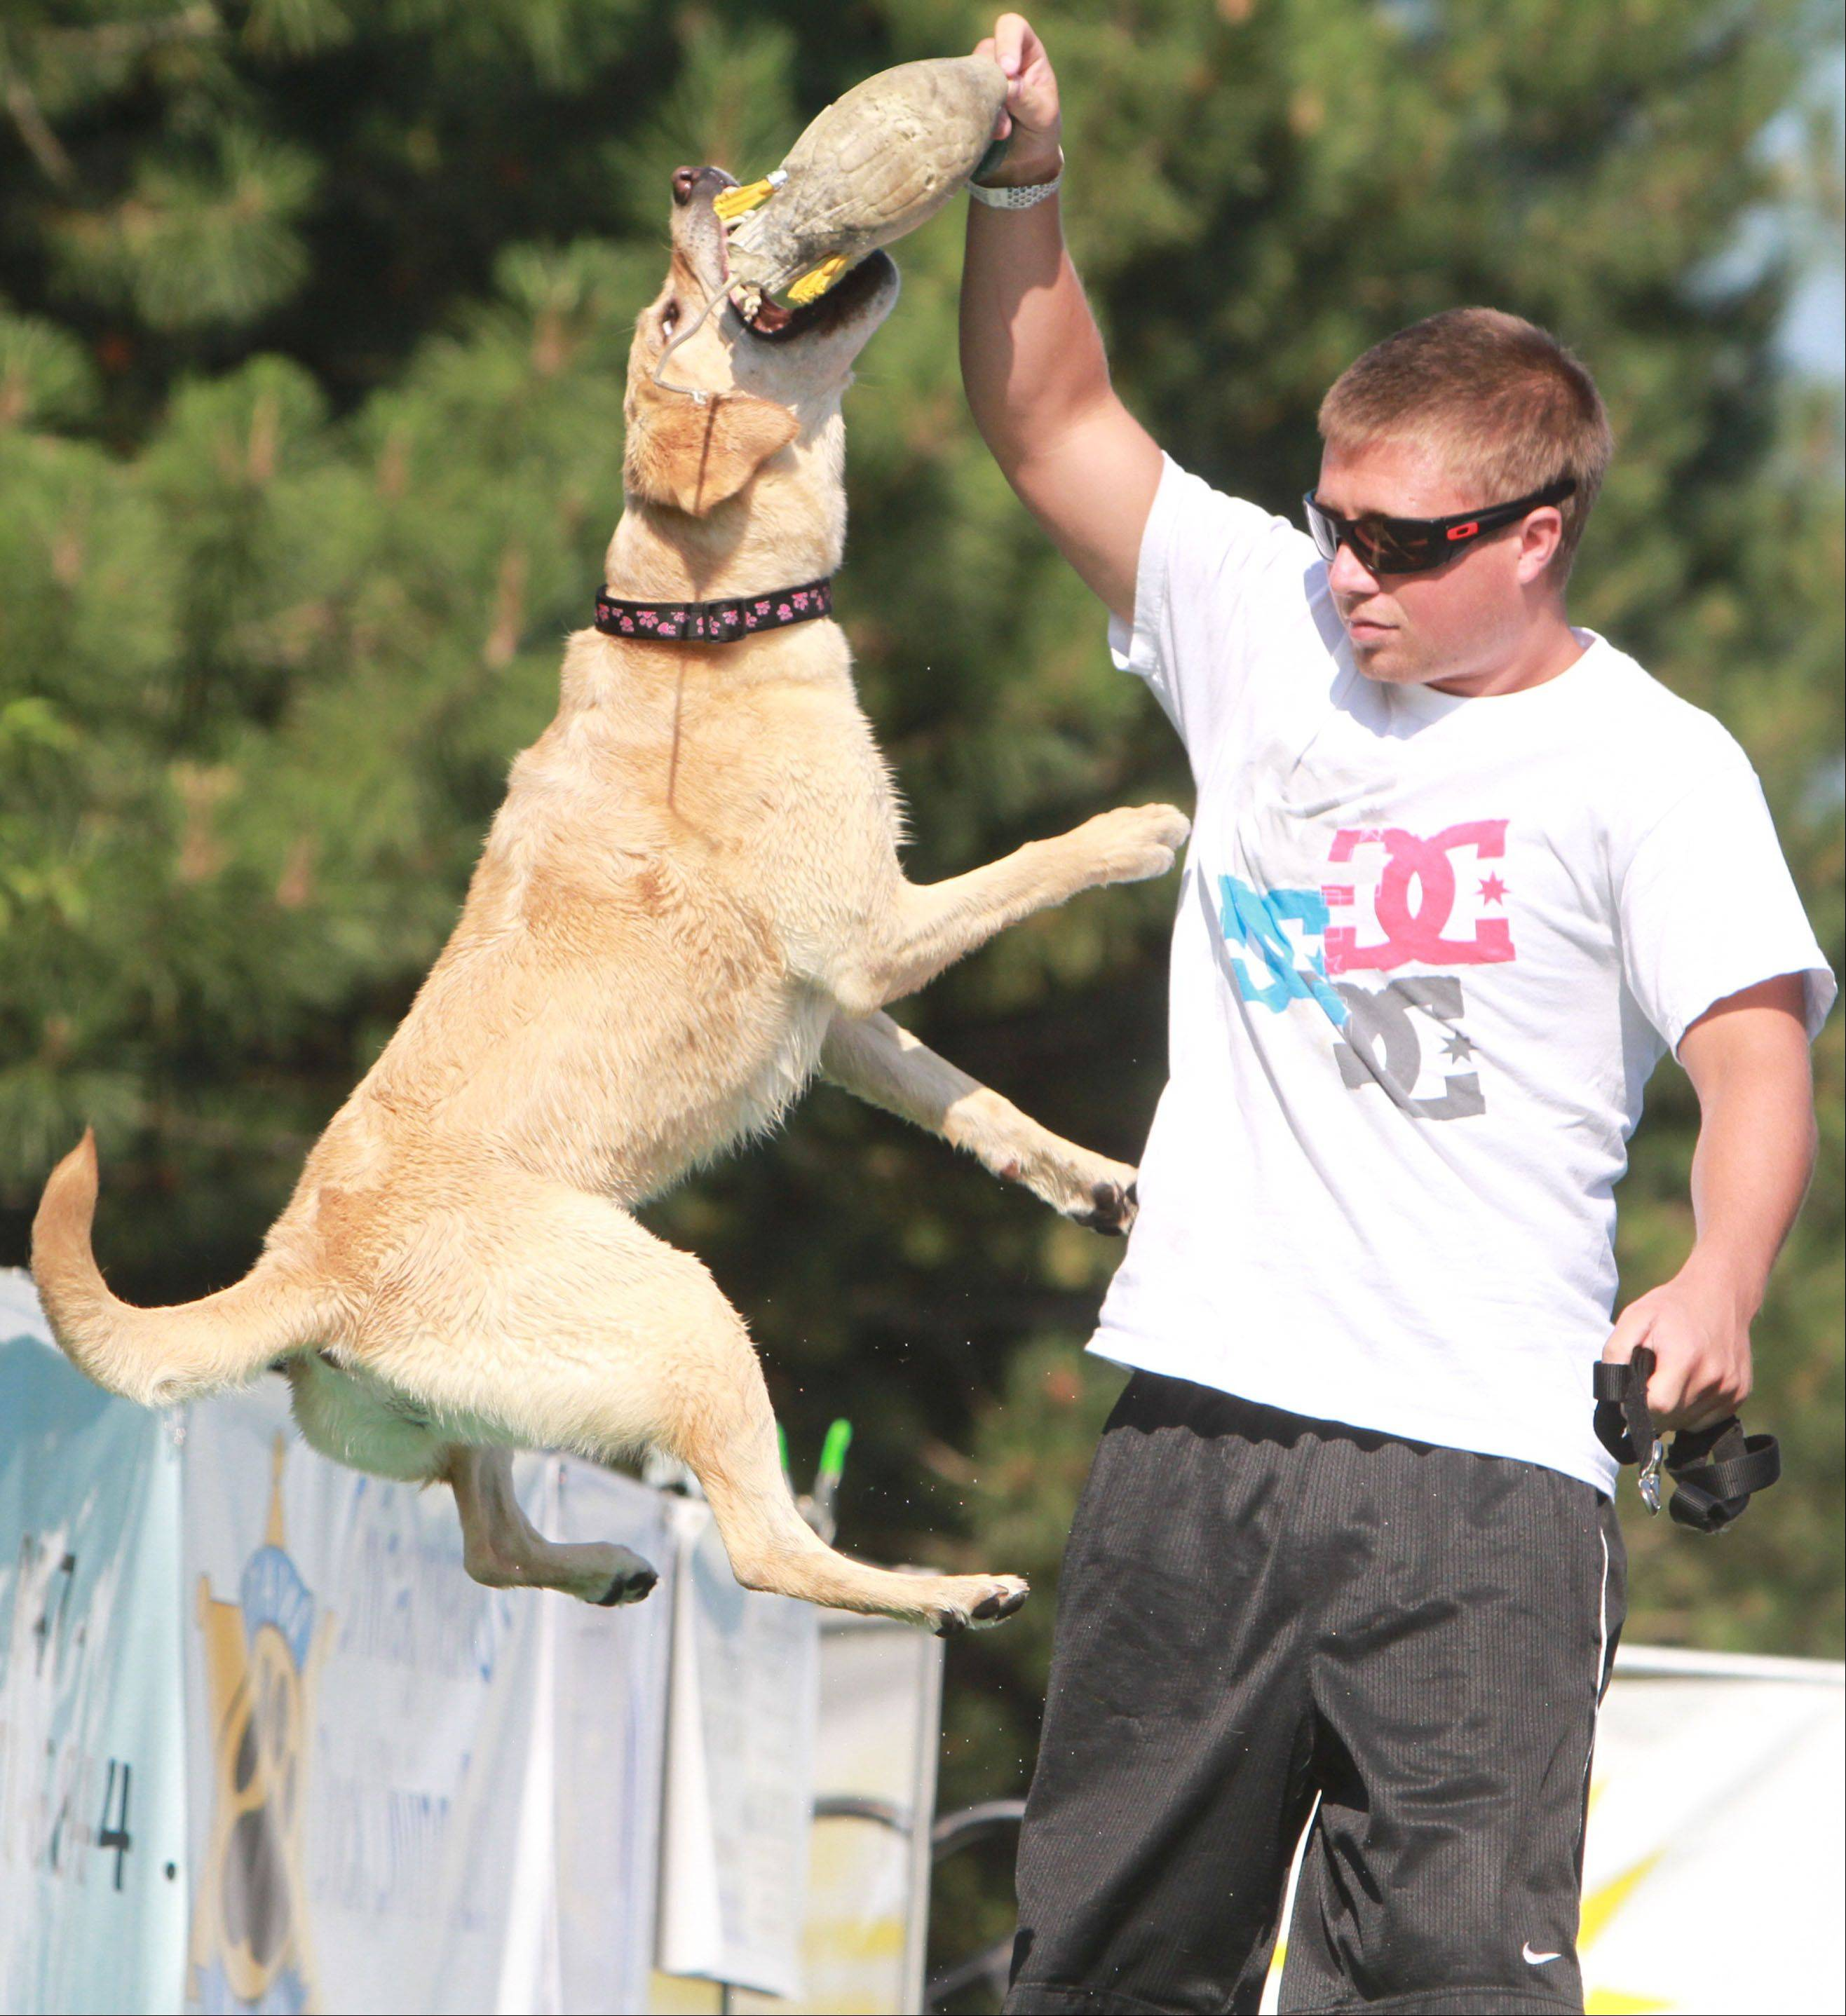 Robert Burns of Mundelein gets his golden labrador retriever, Sedona, excited before competing in the DockDogs-Big Air Jumping competition.